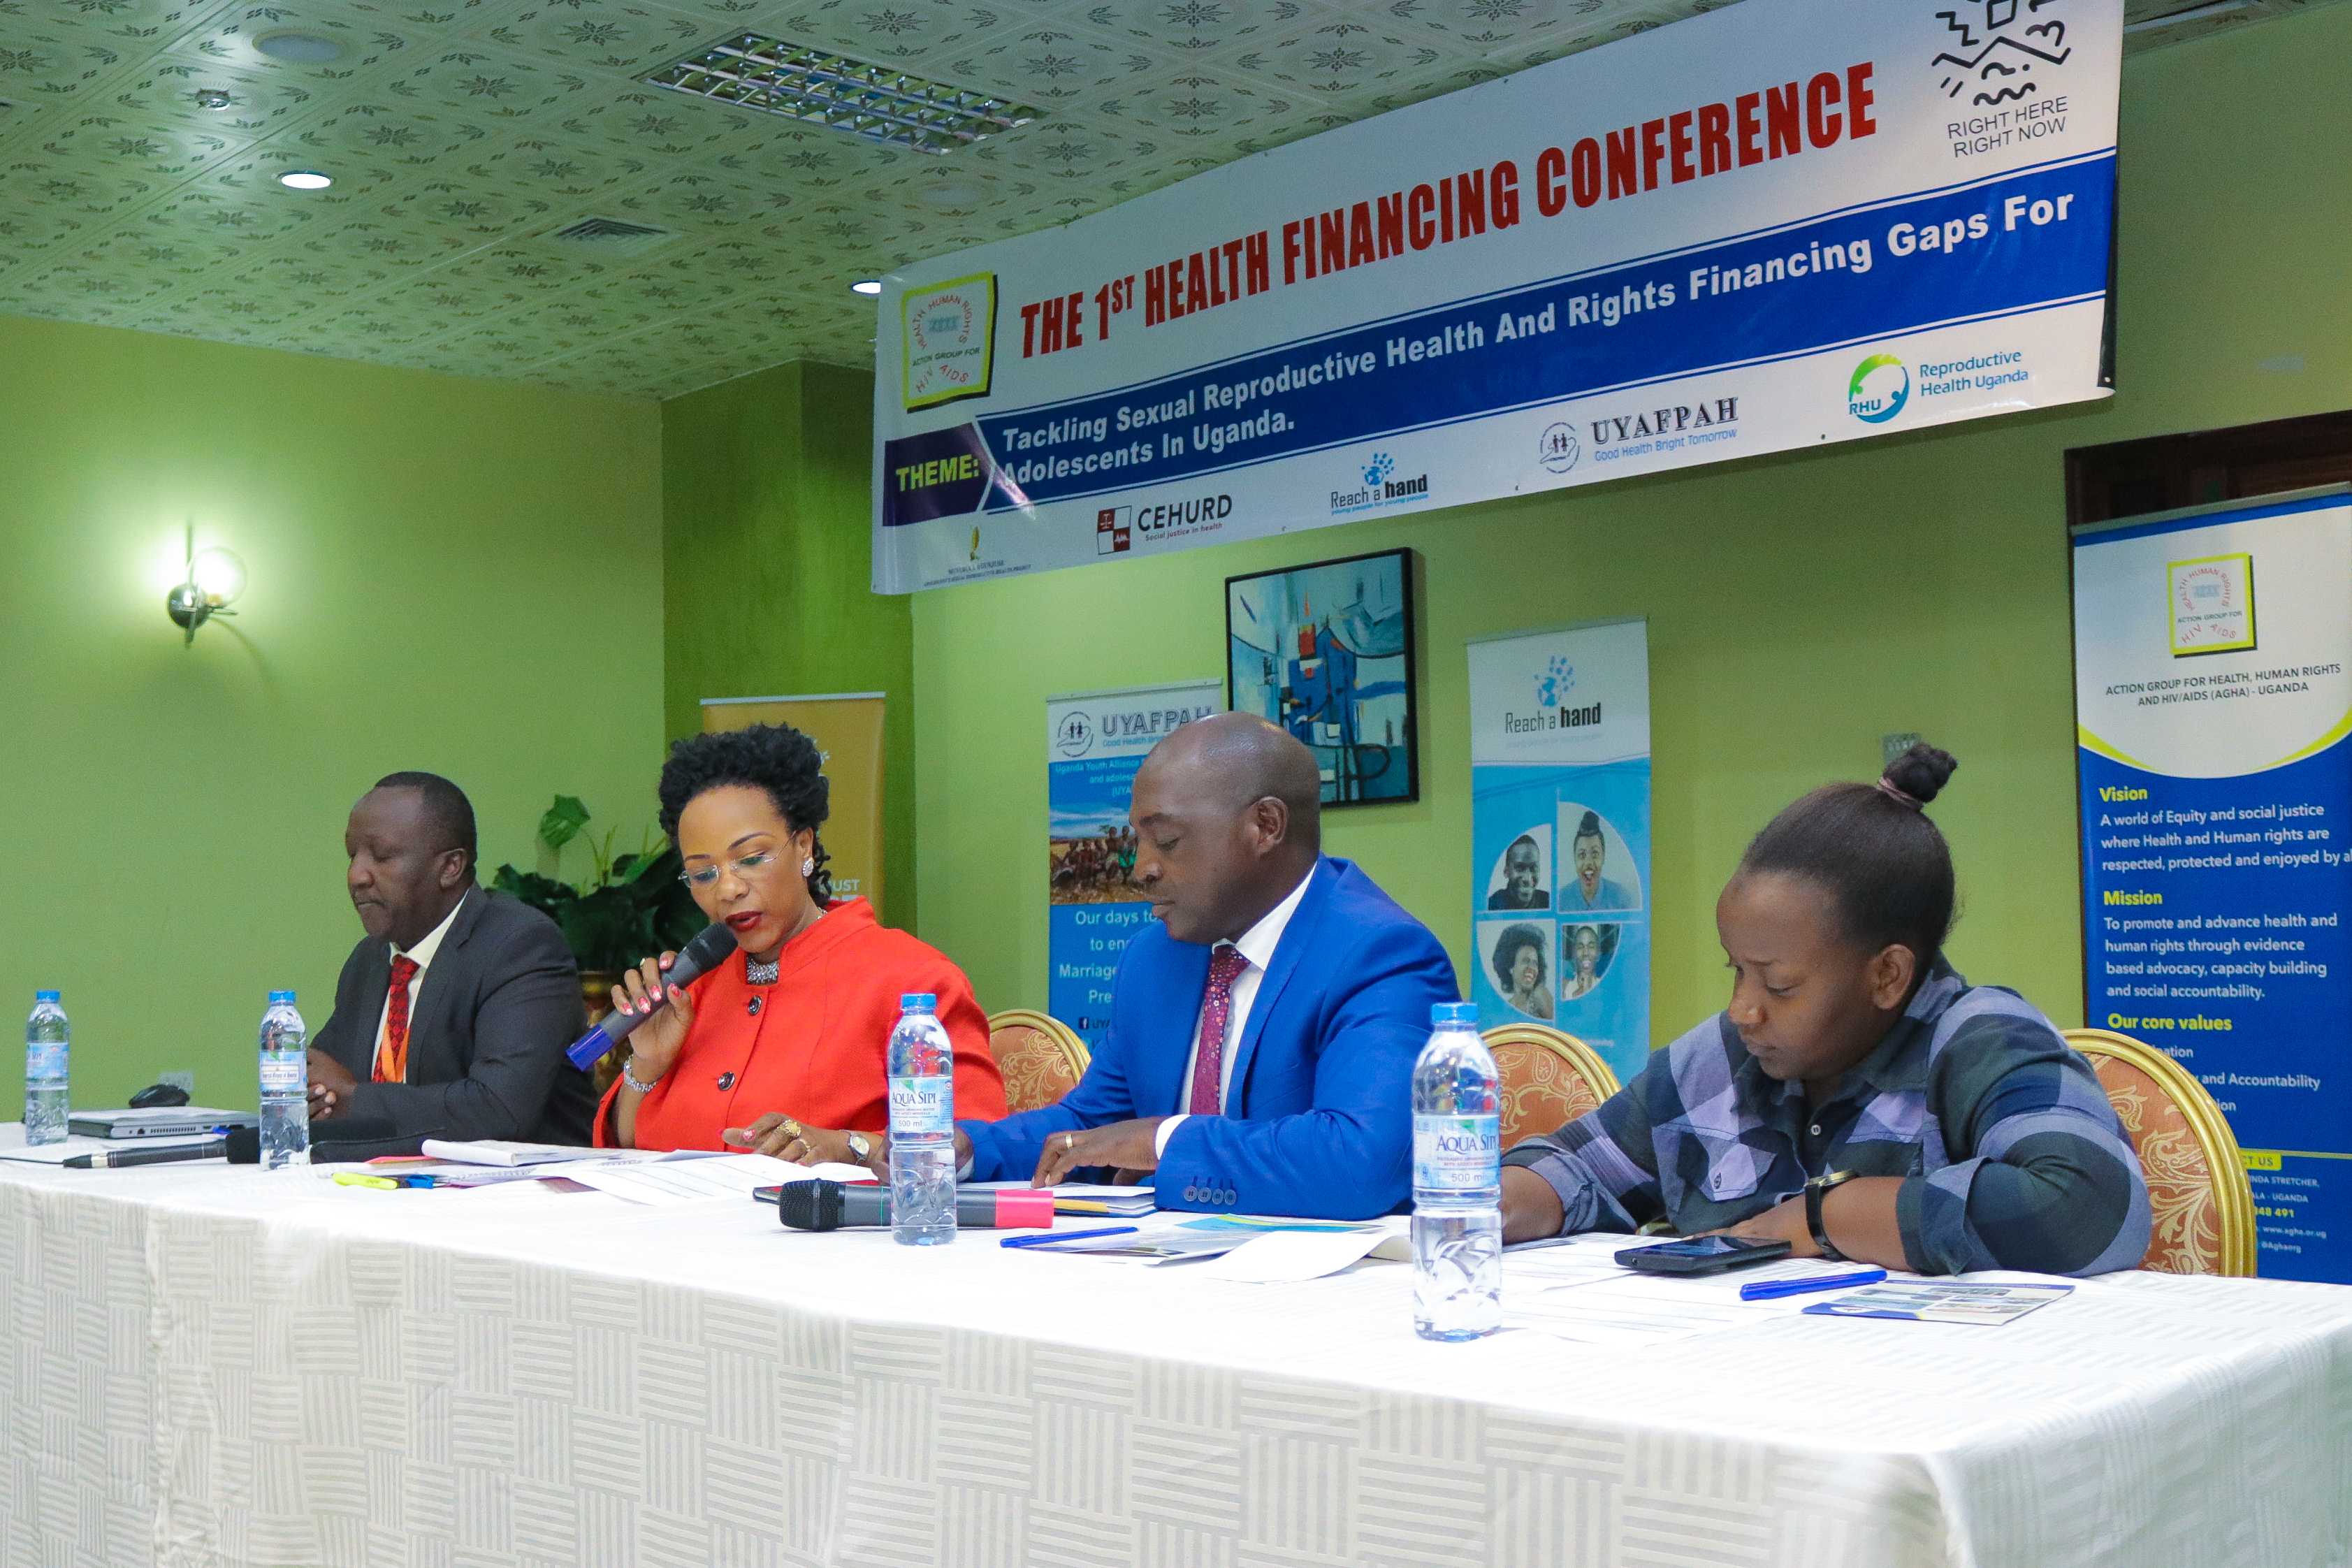 Budget Goals; Learning To Prioritise Health In National Level Financing